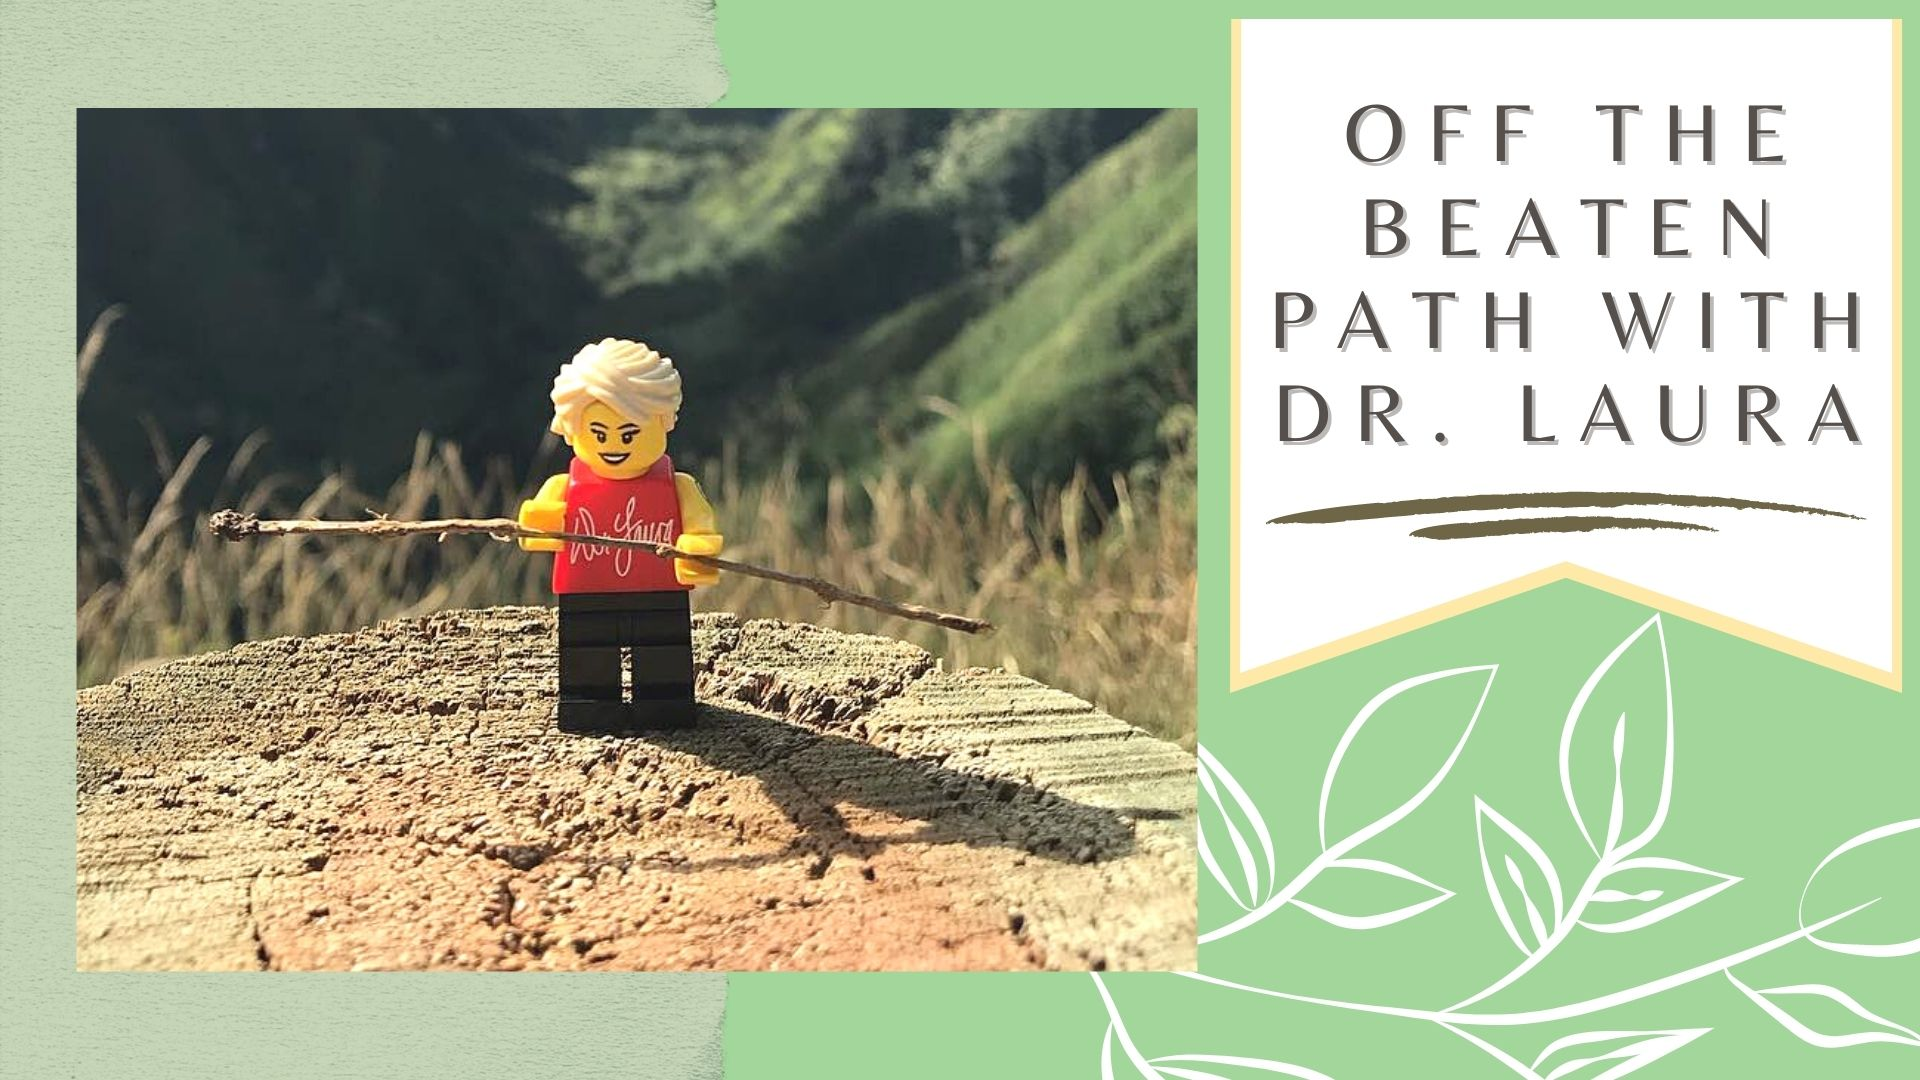 YouTube: Off The Beaten Path with Dr. Laura